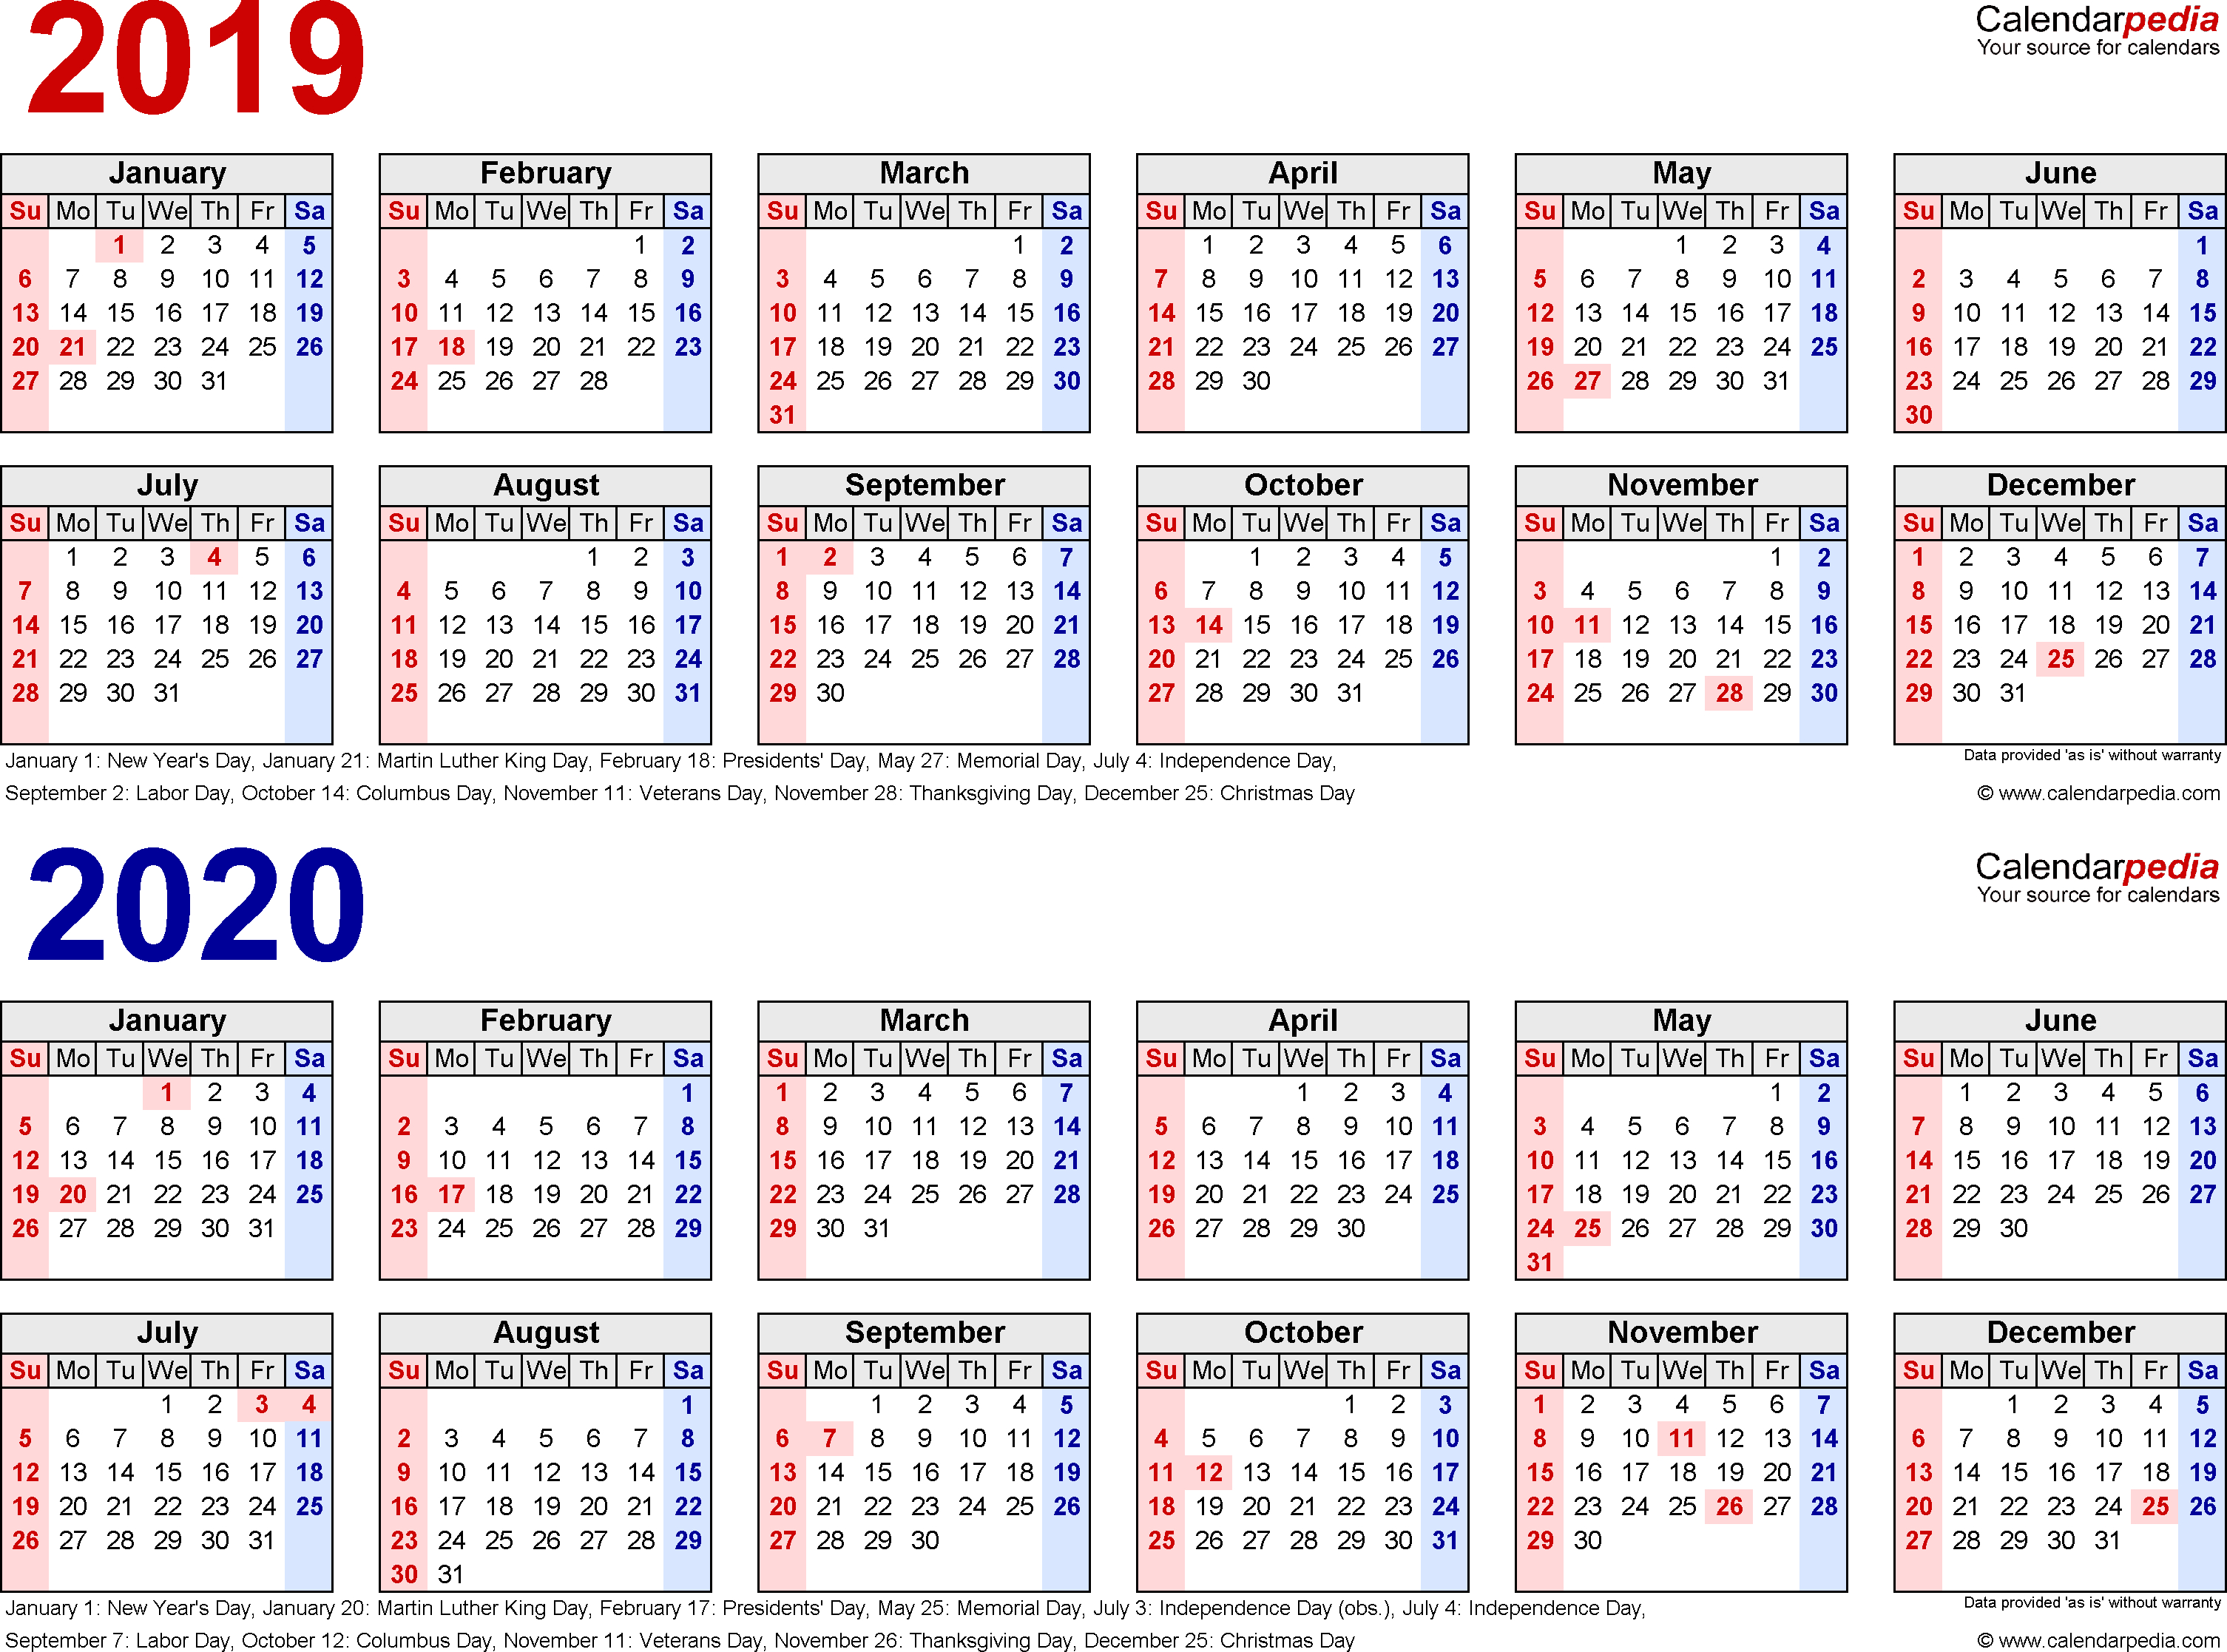 2019-2020 Calendar - Free Printable Two-Year Excel Calendars regarding 2020 Calendar With Week Numbers In Excel